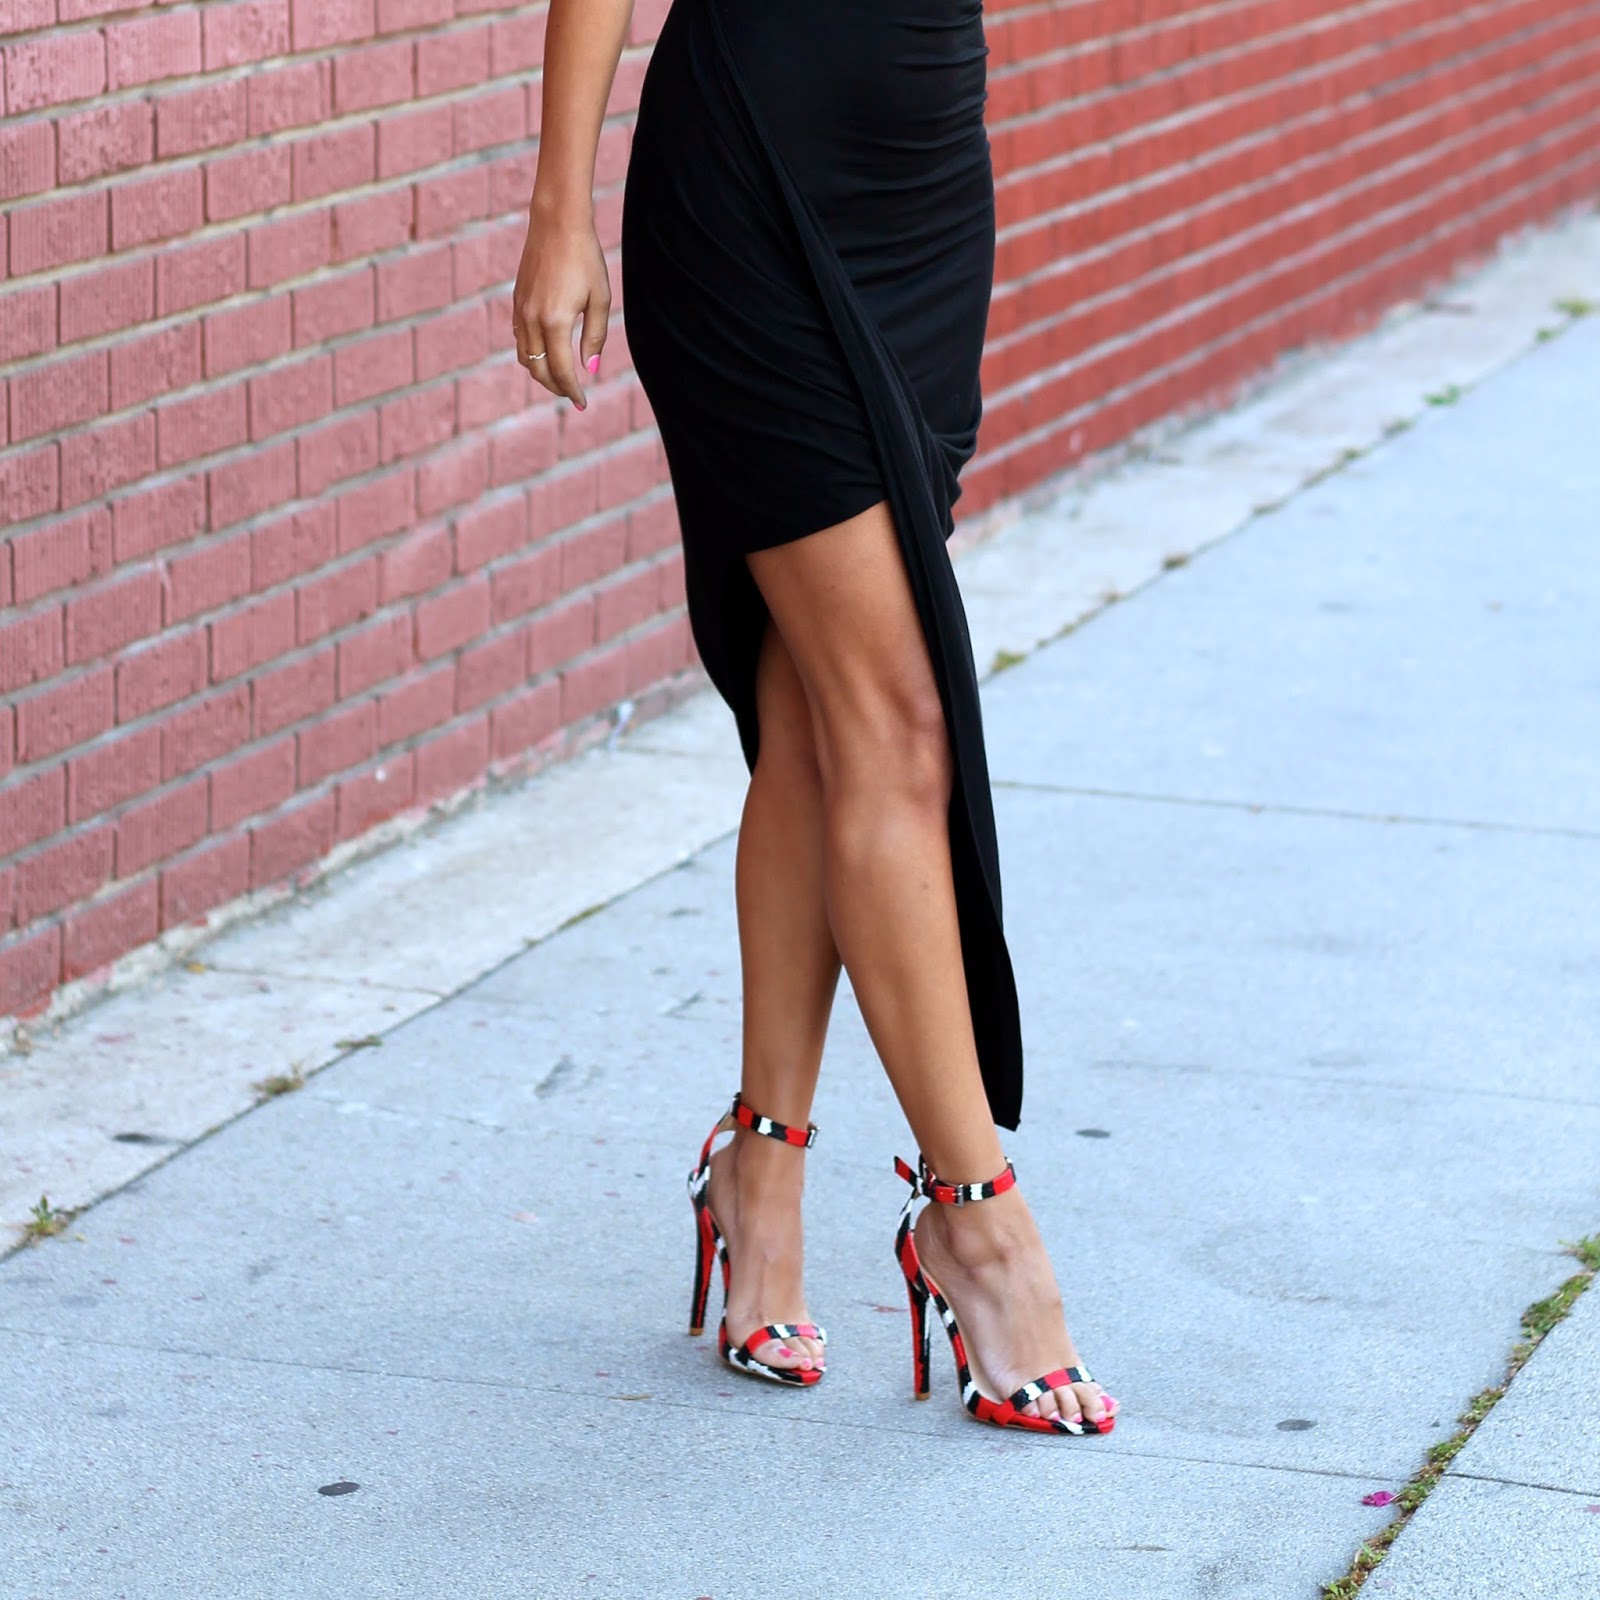 justfab dress, how to style LBD, LBD for date night, LBD outfit